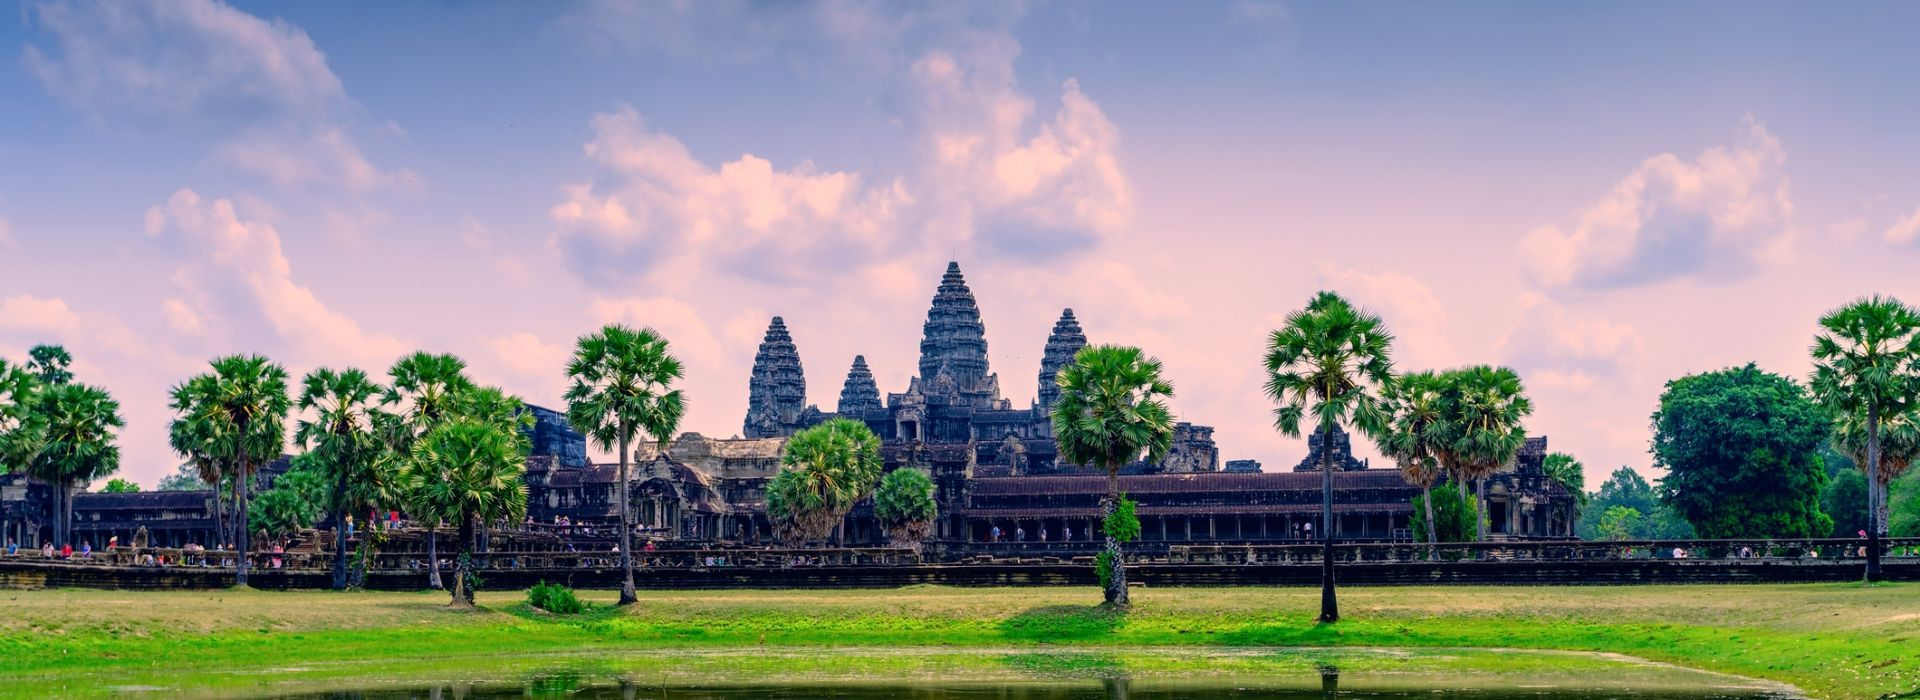 Special interests and hobbies Tours in Cambodia